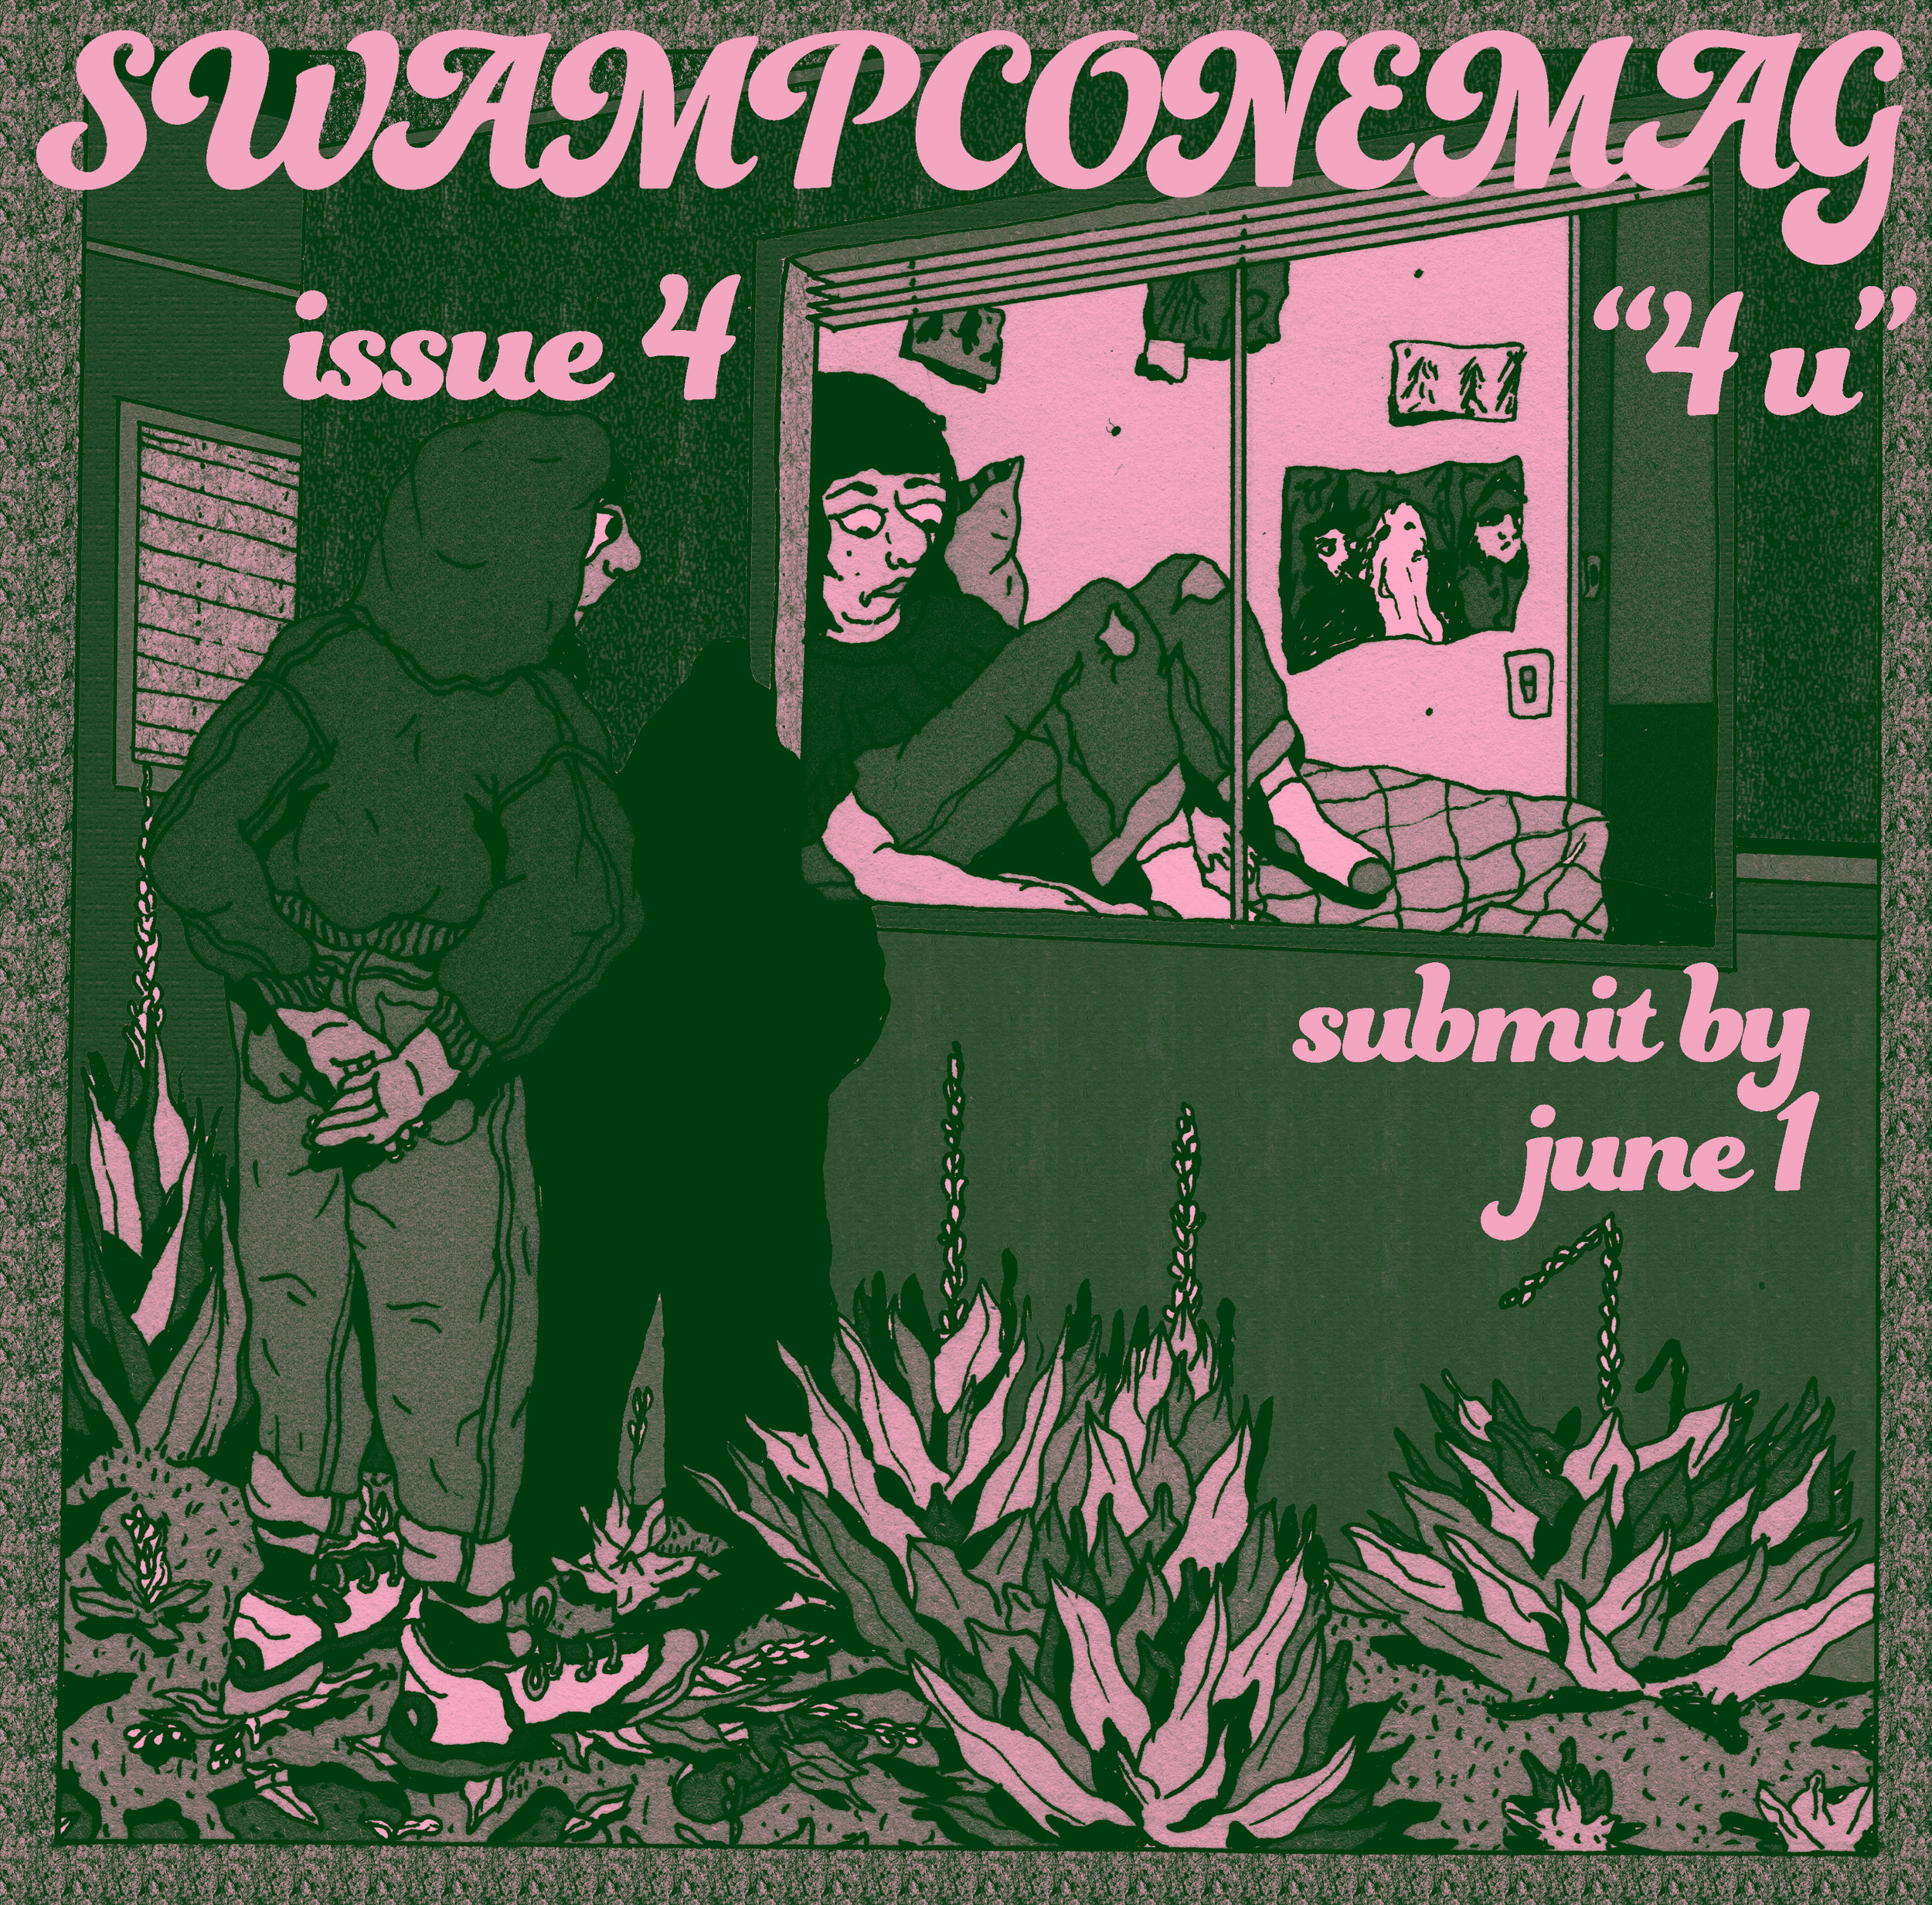 Submissions are open and underway for issue 4! Send em in by June 1!!!!!!!!!!!!! Details under the submissions tab!